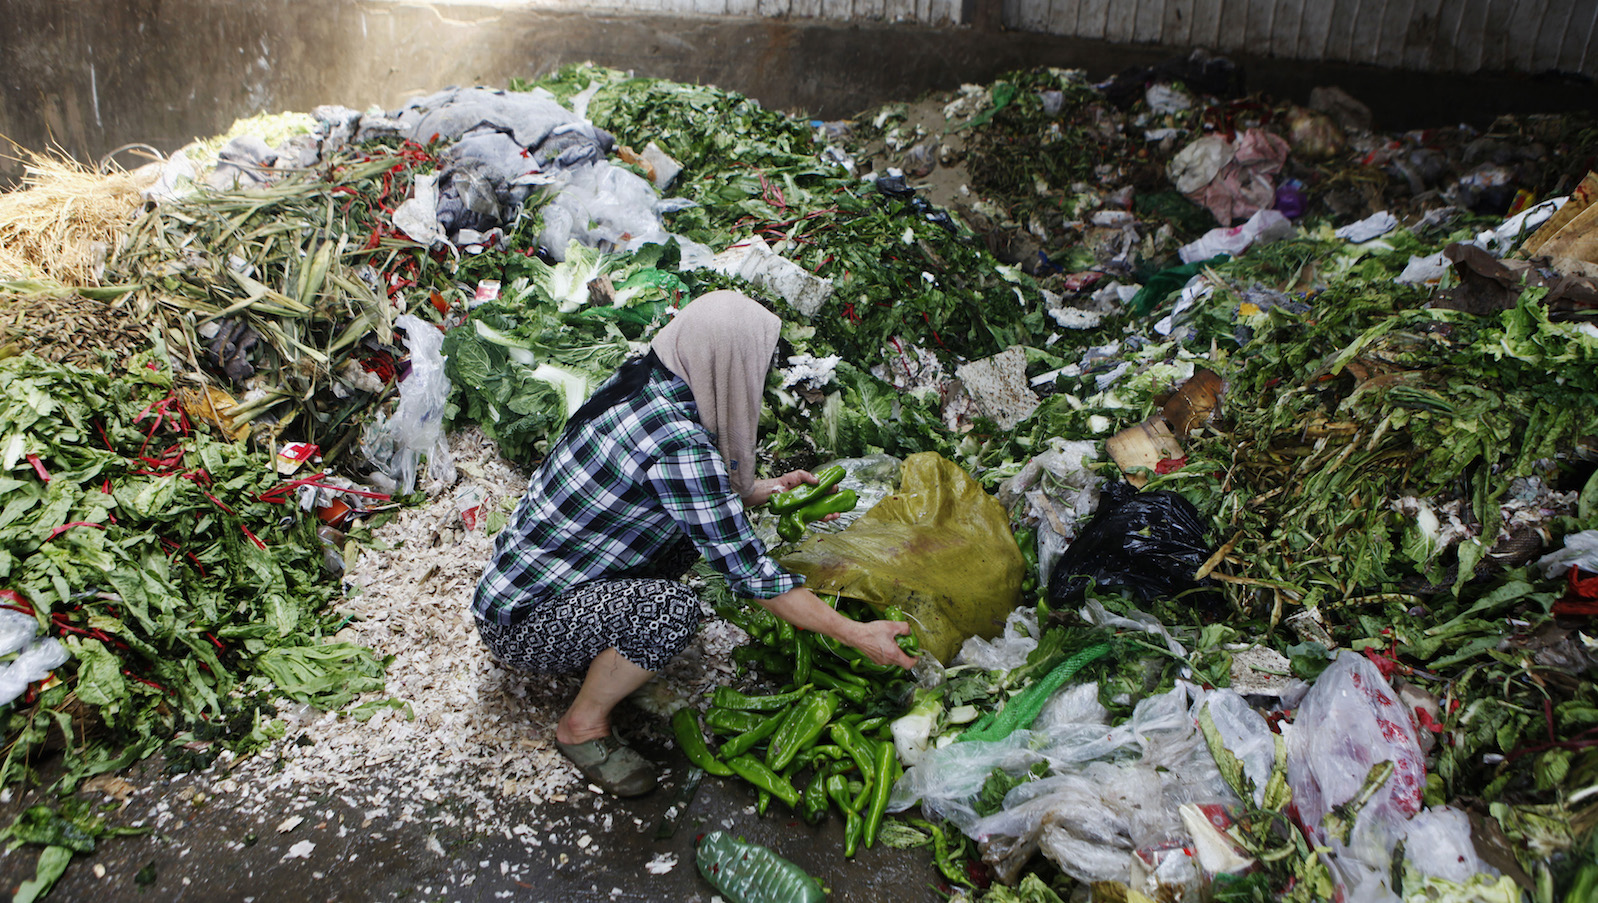 A woman picks up vegetables discarded by food vendors at a garbage dump site of a wholesale market in Xi'an, Shaanxi province July 27, 2014. About 60 tonnes of vegetables are discarded every day in the market due to damages mainly caused by hot weather. Many residents come to pick them up at a garbage dump site to eat or feed their livestock, local media reported. Picture taken July 27, 2014.